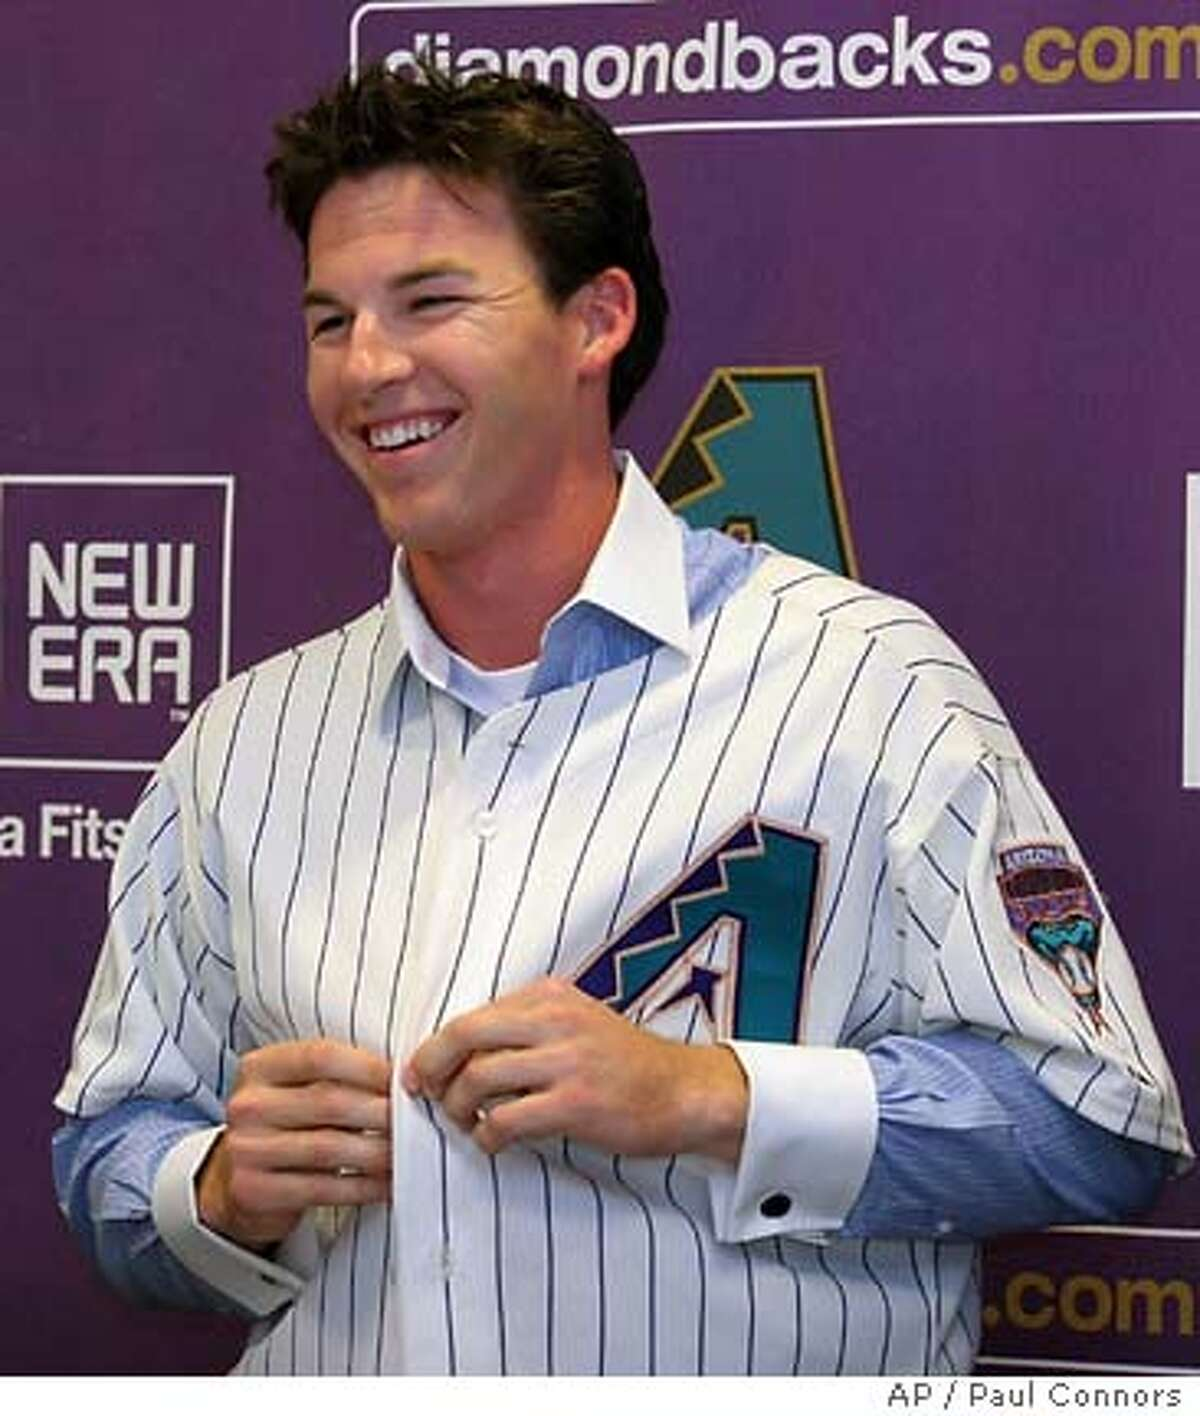 Diamondbacks infielder Stephen Drew dons a team jersey during a news conference announcing he had reached an agreement with the team Thursday, June 2, 2005, at Bank One Ballpark in Phoenix. Drew was the Diamondbacks' number one draft choice and brothe rof J.D. Drew.(AP Photo/Paul Connors)